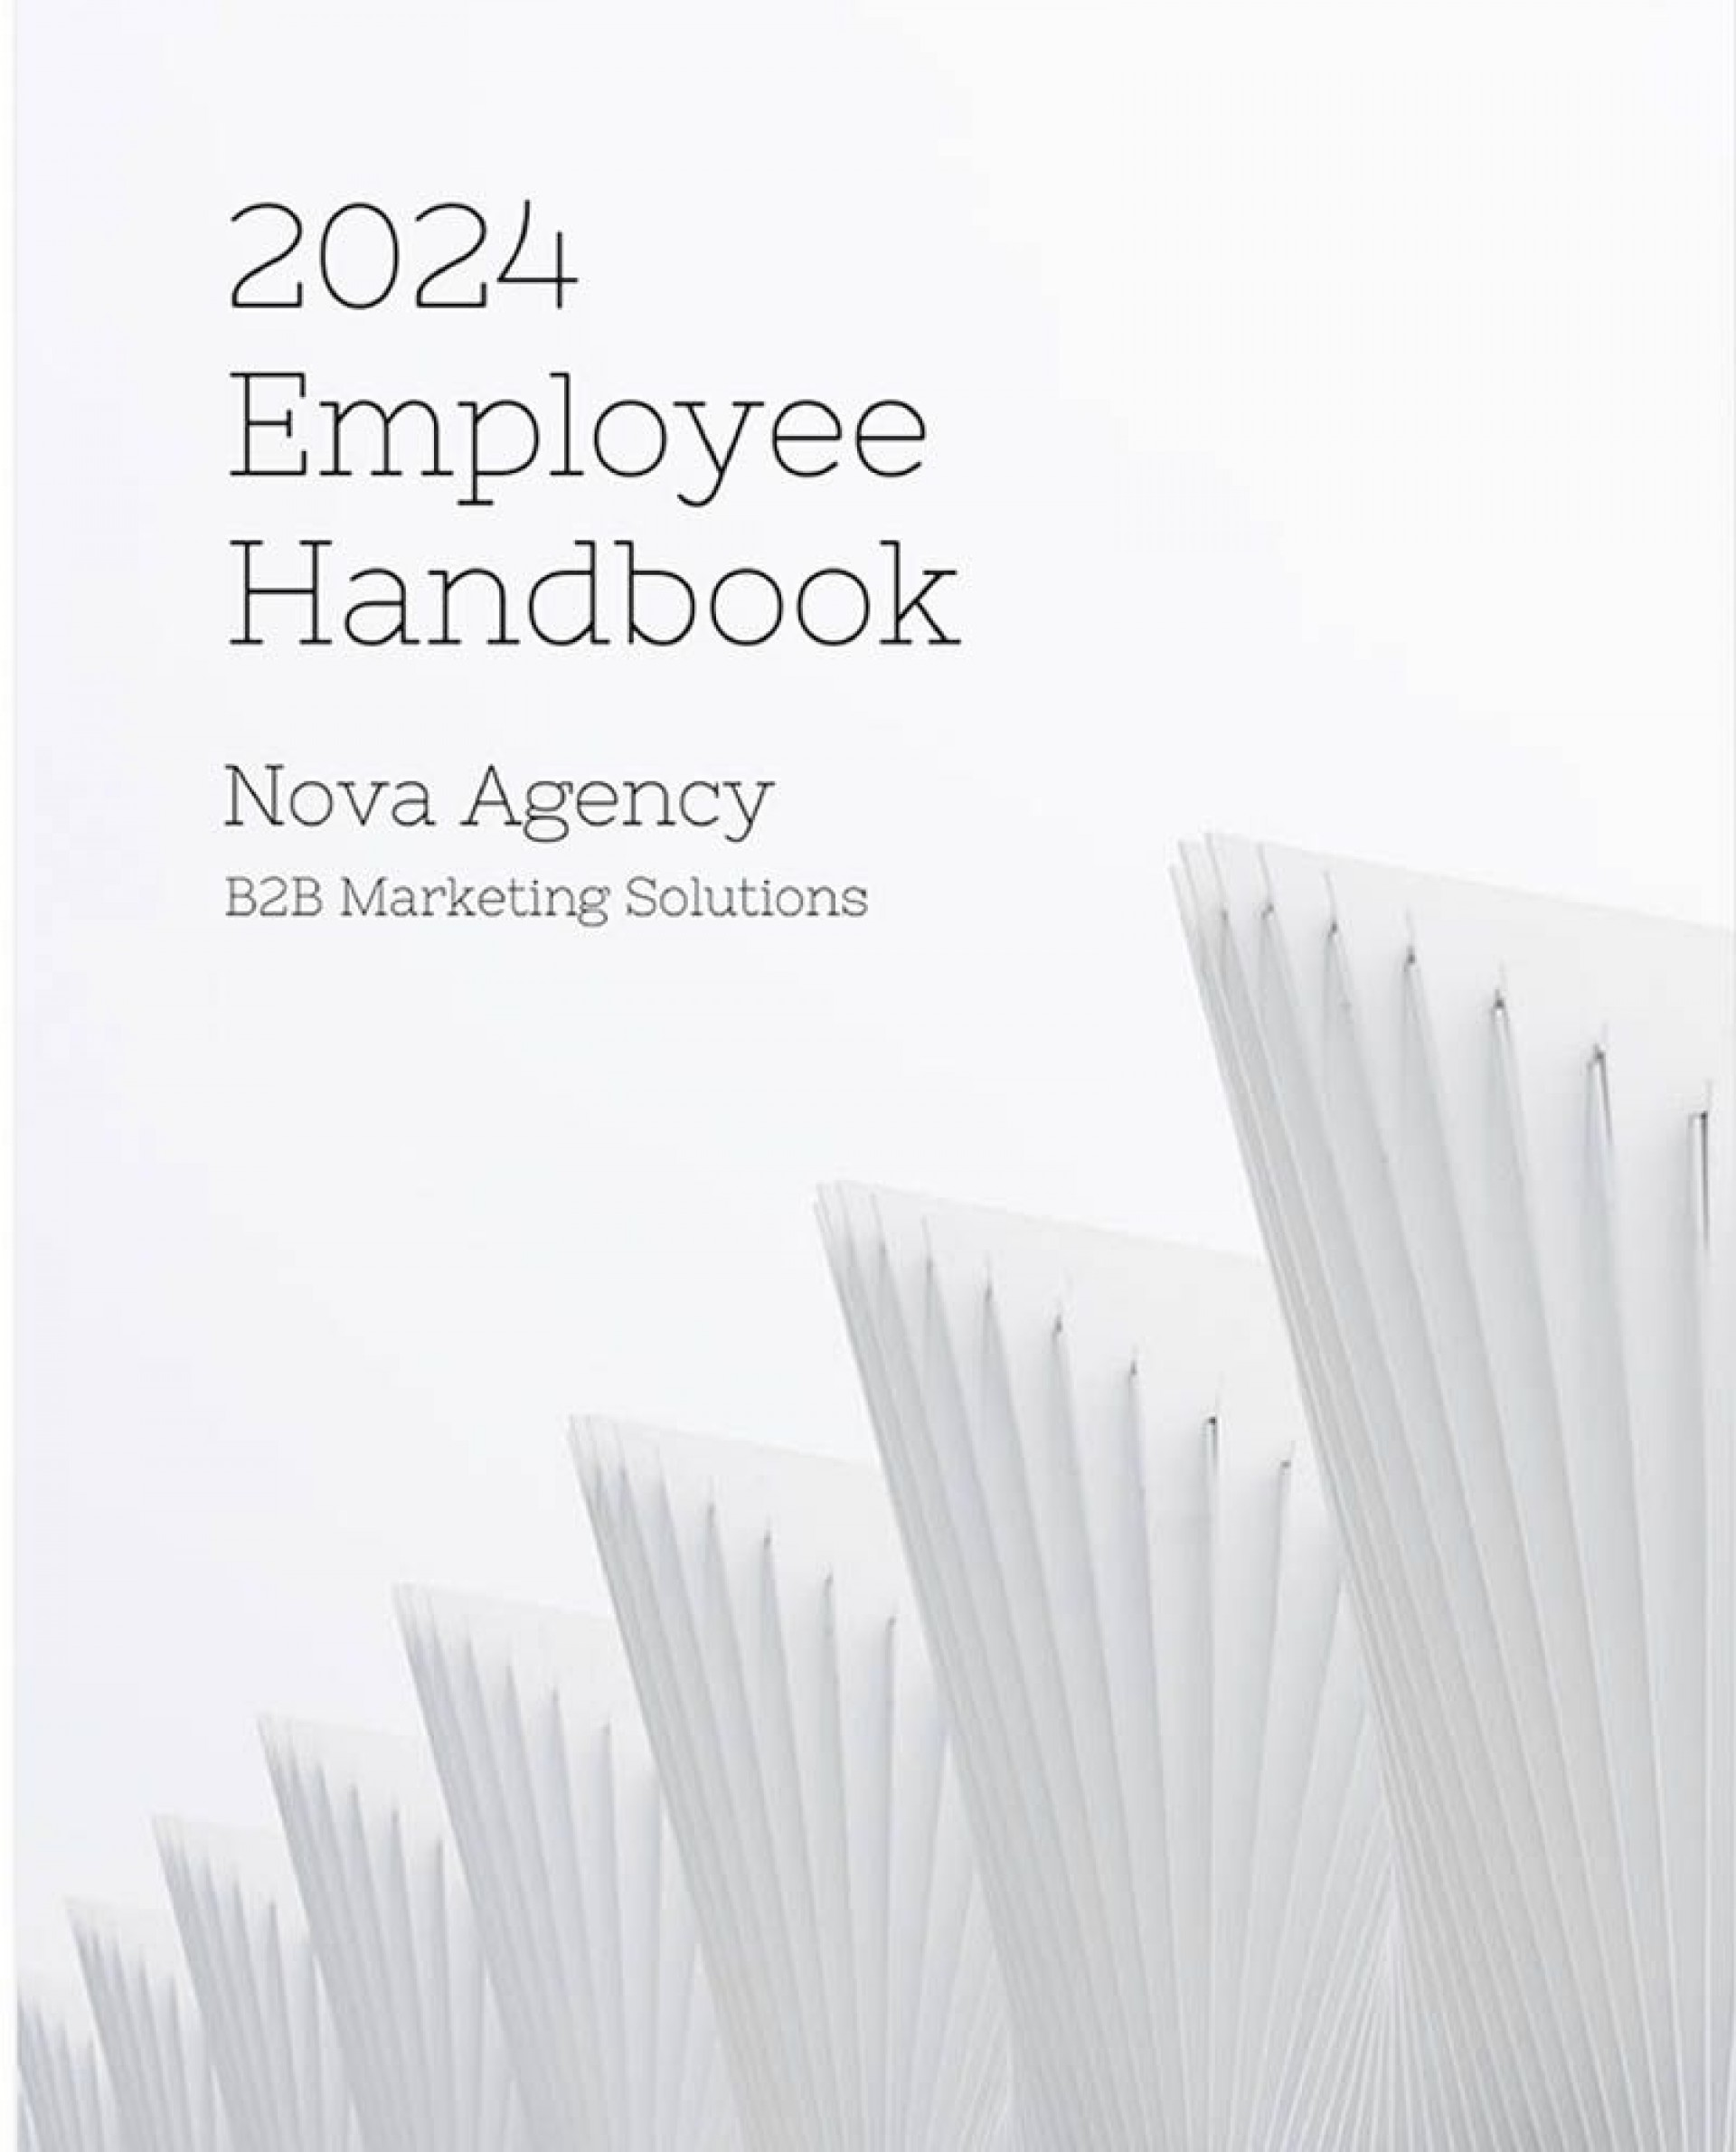 009 Awesome Employee Handbook Template Word Highest Quality  Nonprofit Free Sample In Malaysia1920